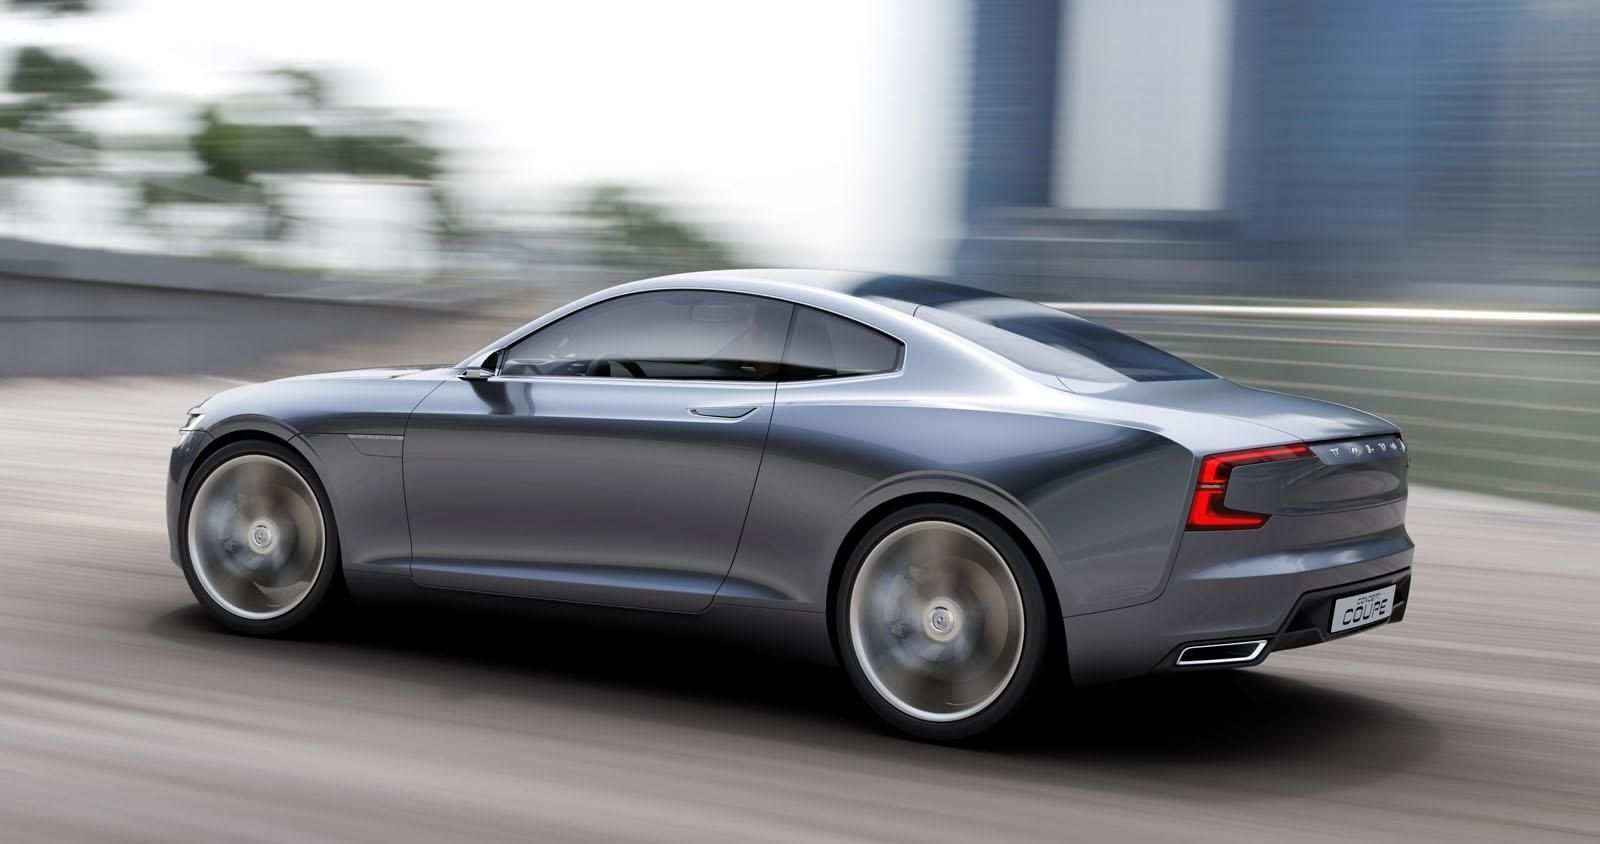 67 The Best Volvo Coupe 2019 Speed Test